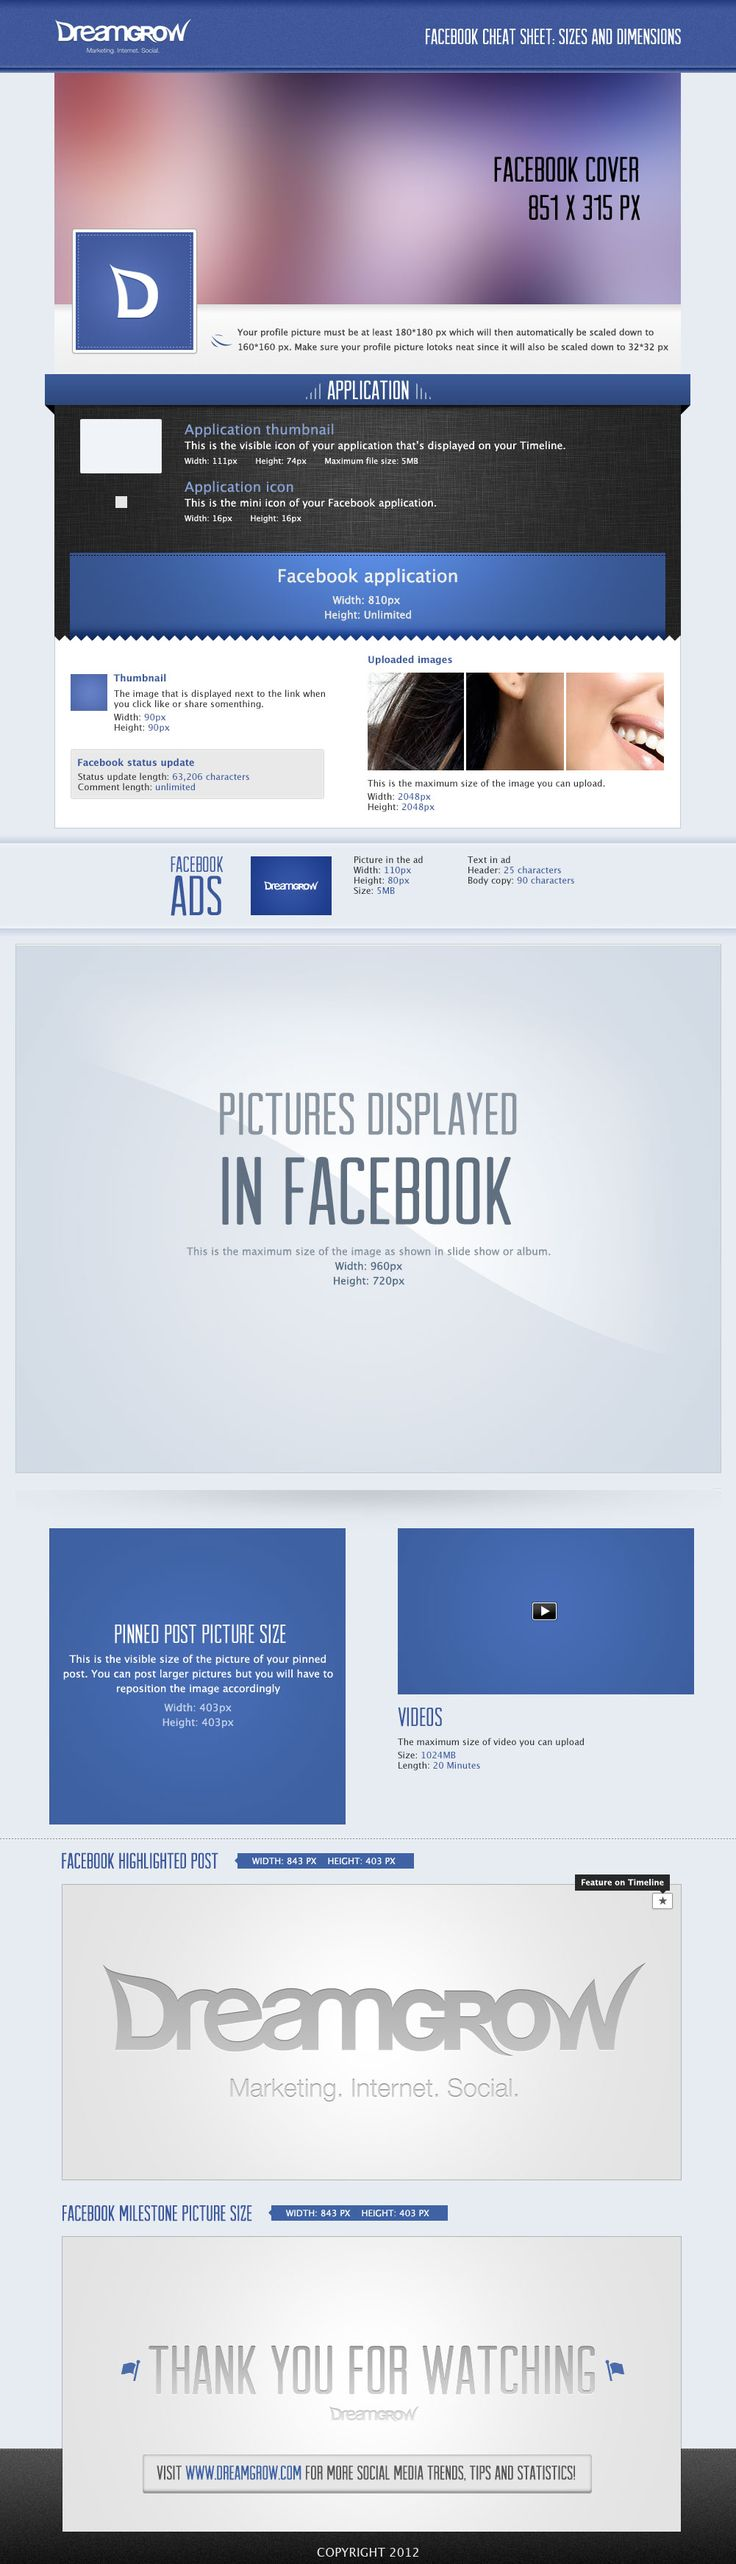 Facebook Cheat Sheet: sizes and dimensions for the timeline.